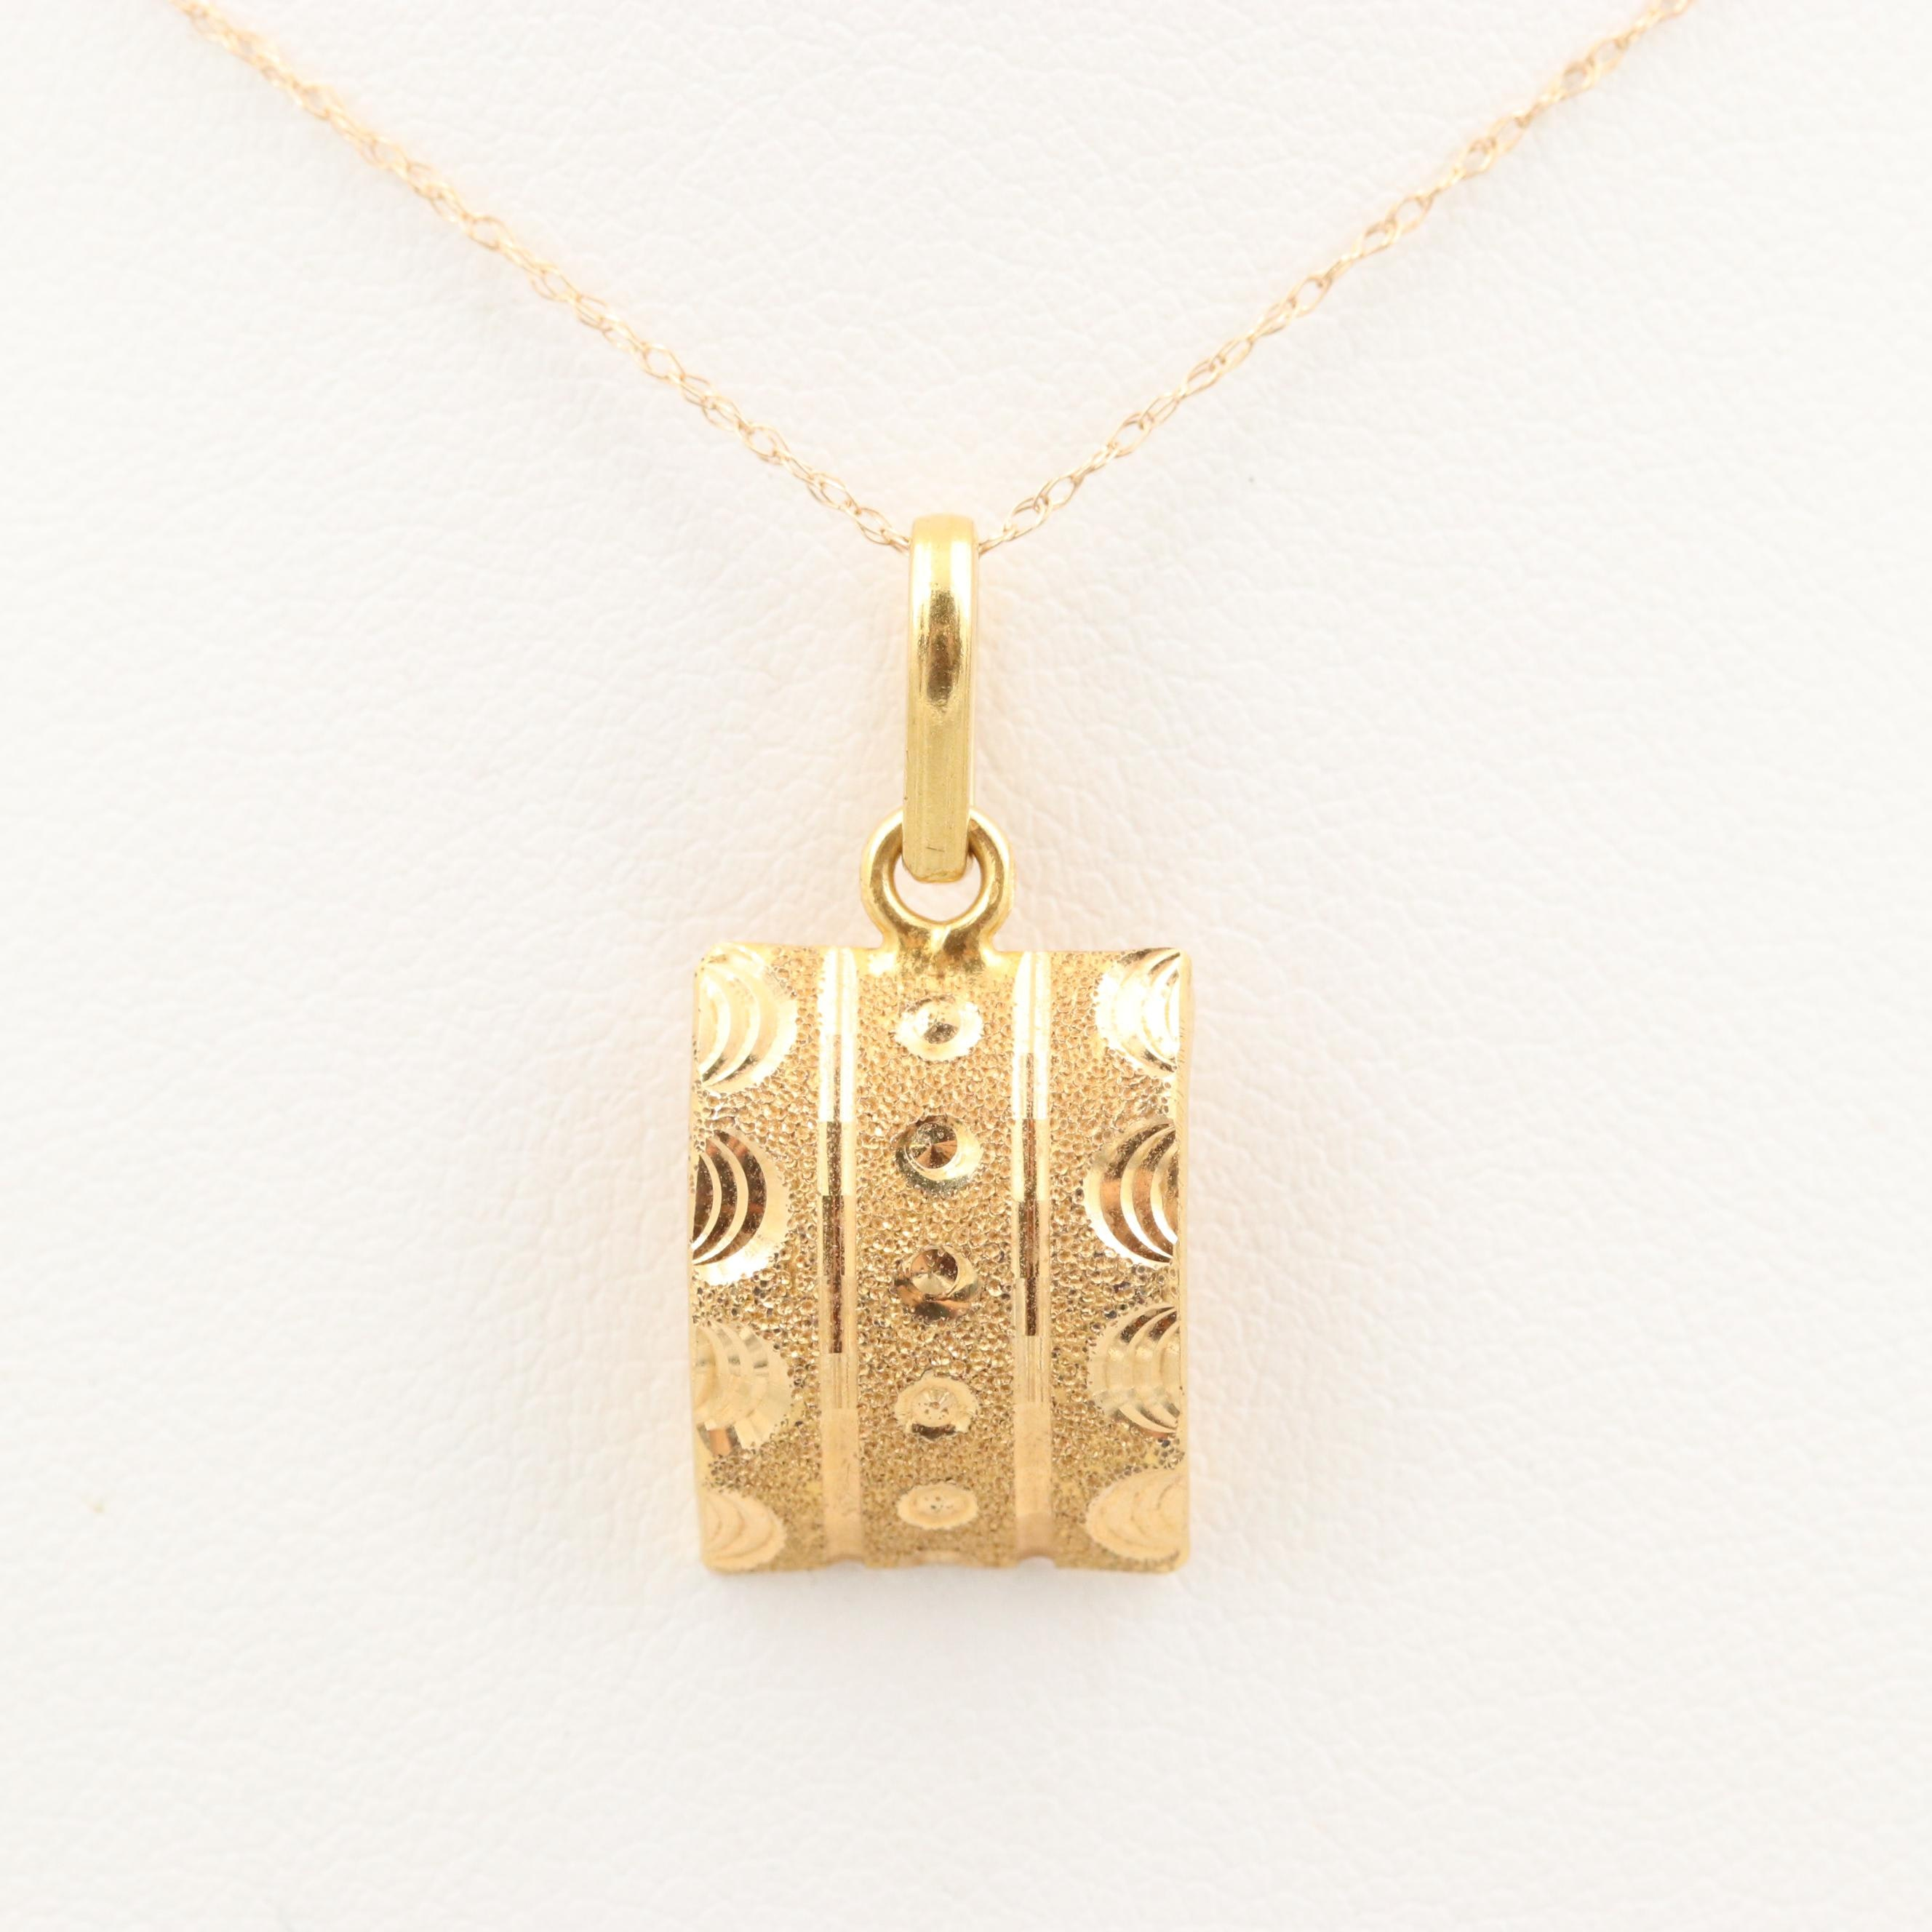 18K Yellow Gold Pendant on 14K Yellow Gold Chain